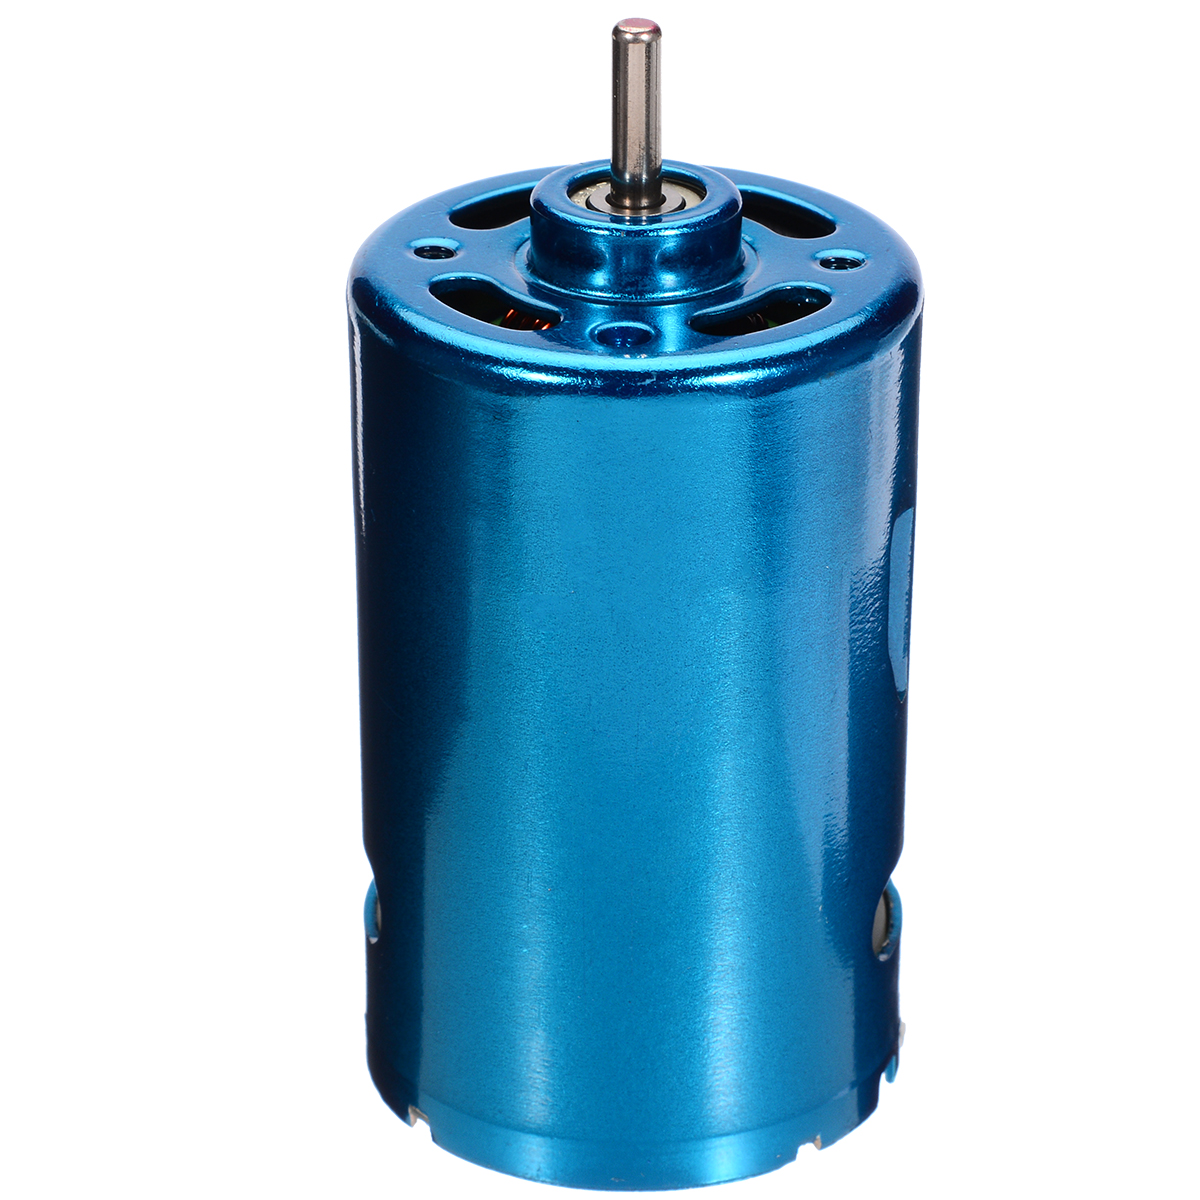 High Accuracy RS-<font><b>550</b></font> <font><b>Motor</b></font> DC <font><b>12V</b></font> 24V 30000 RPM High Speed Large Torque Low Noise with Wear Resistance For RC Car Boat Model image